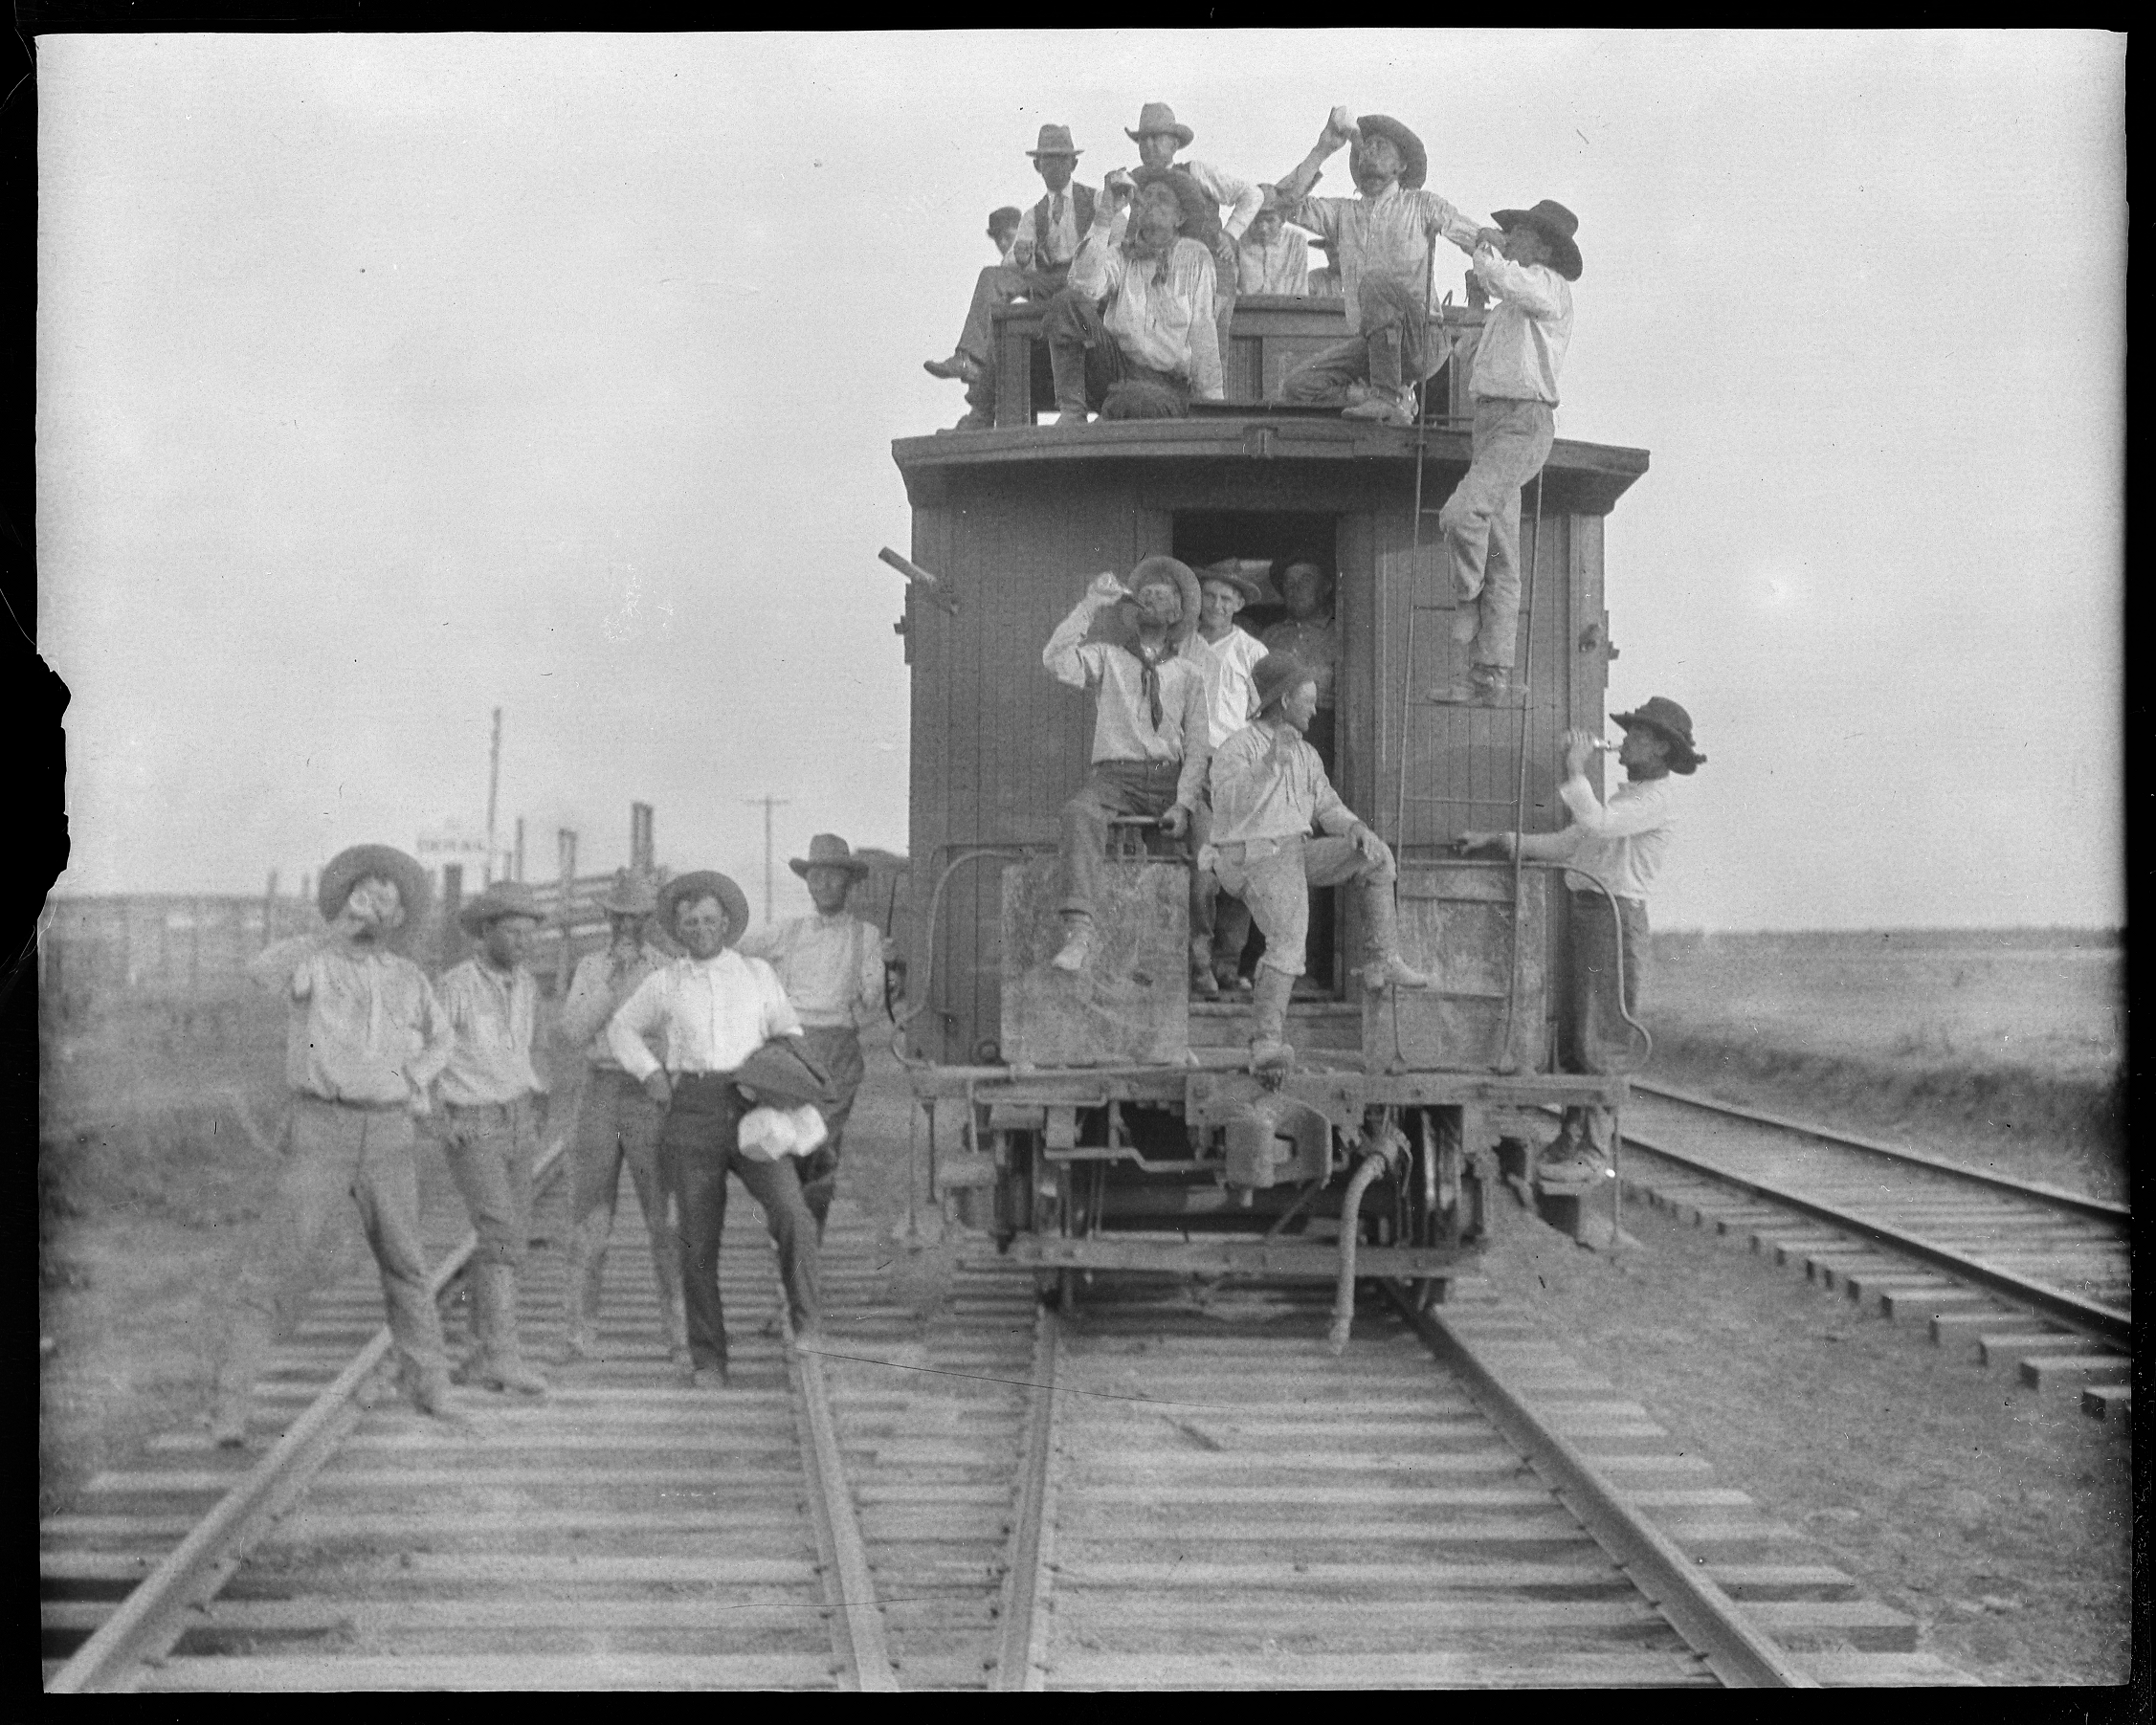 A picture from 1910 shows cowboys celebrating the delivery of cattle to lubbock texas